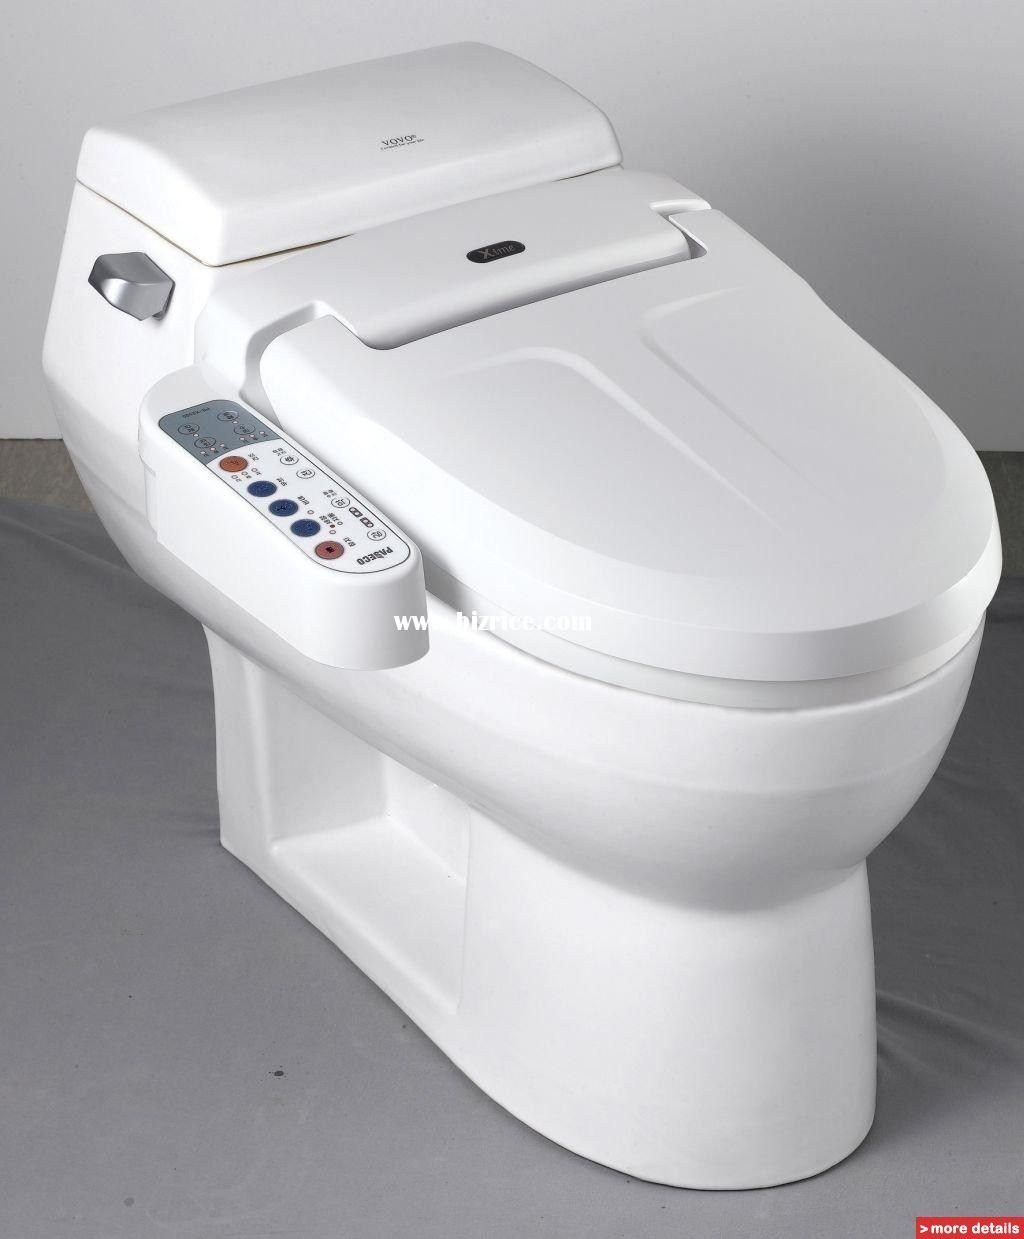 Toilet Bidet Handicapped Guide To Toilet Bidets Bidet Toilet Seats And Bidet Attachments Bidet Bidet Toilet Bidet Toilet Combo